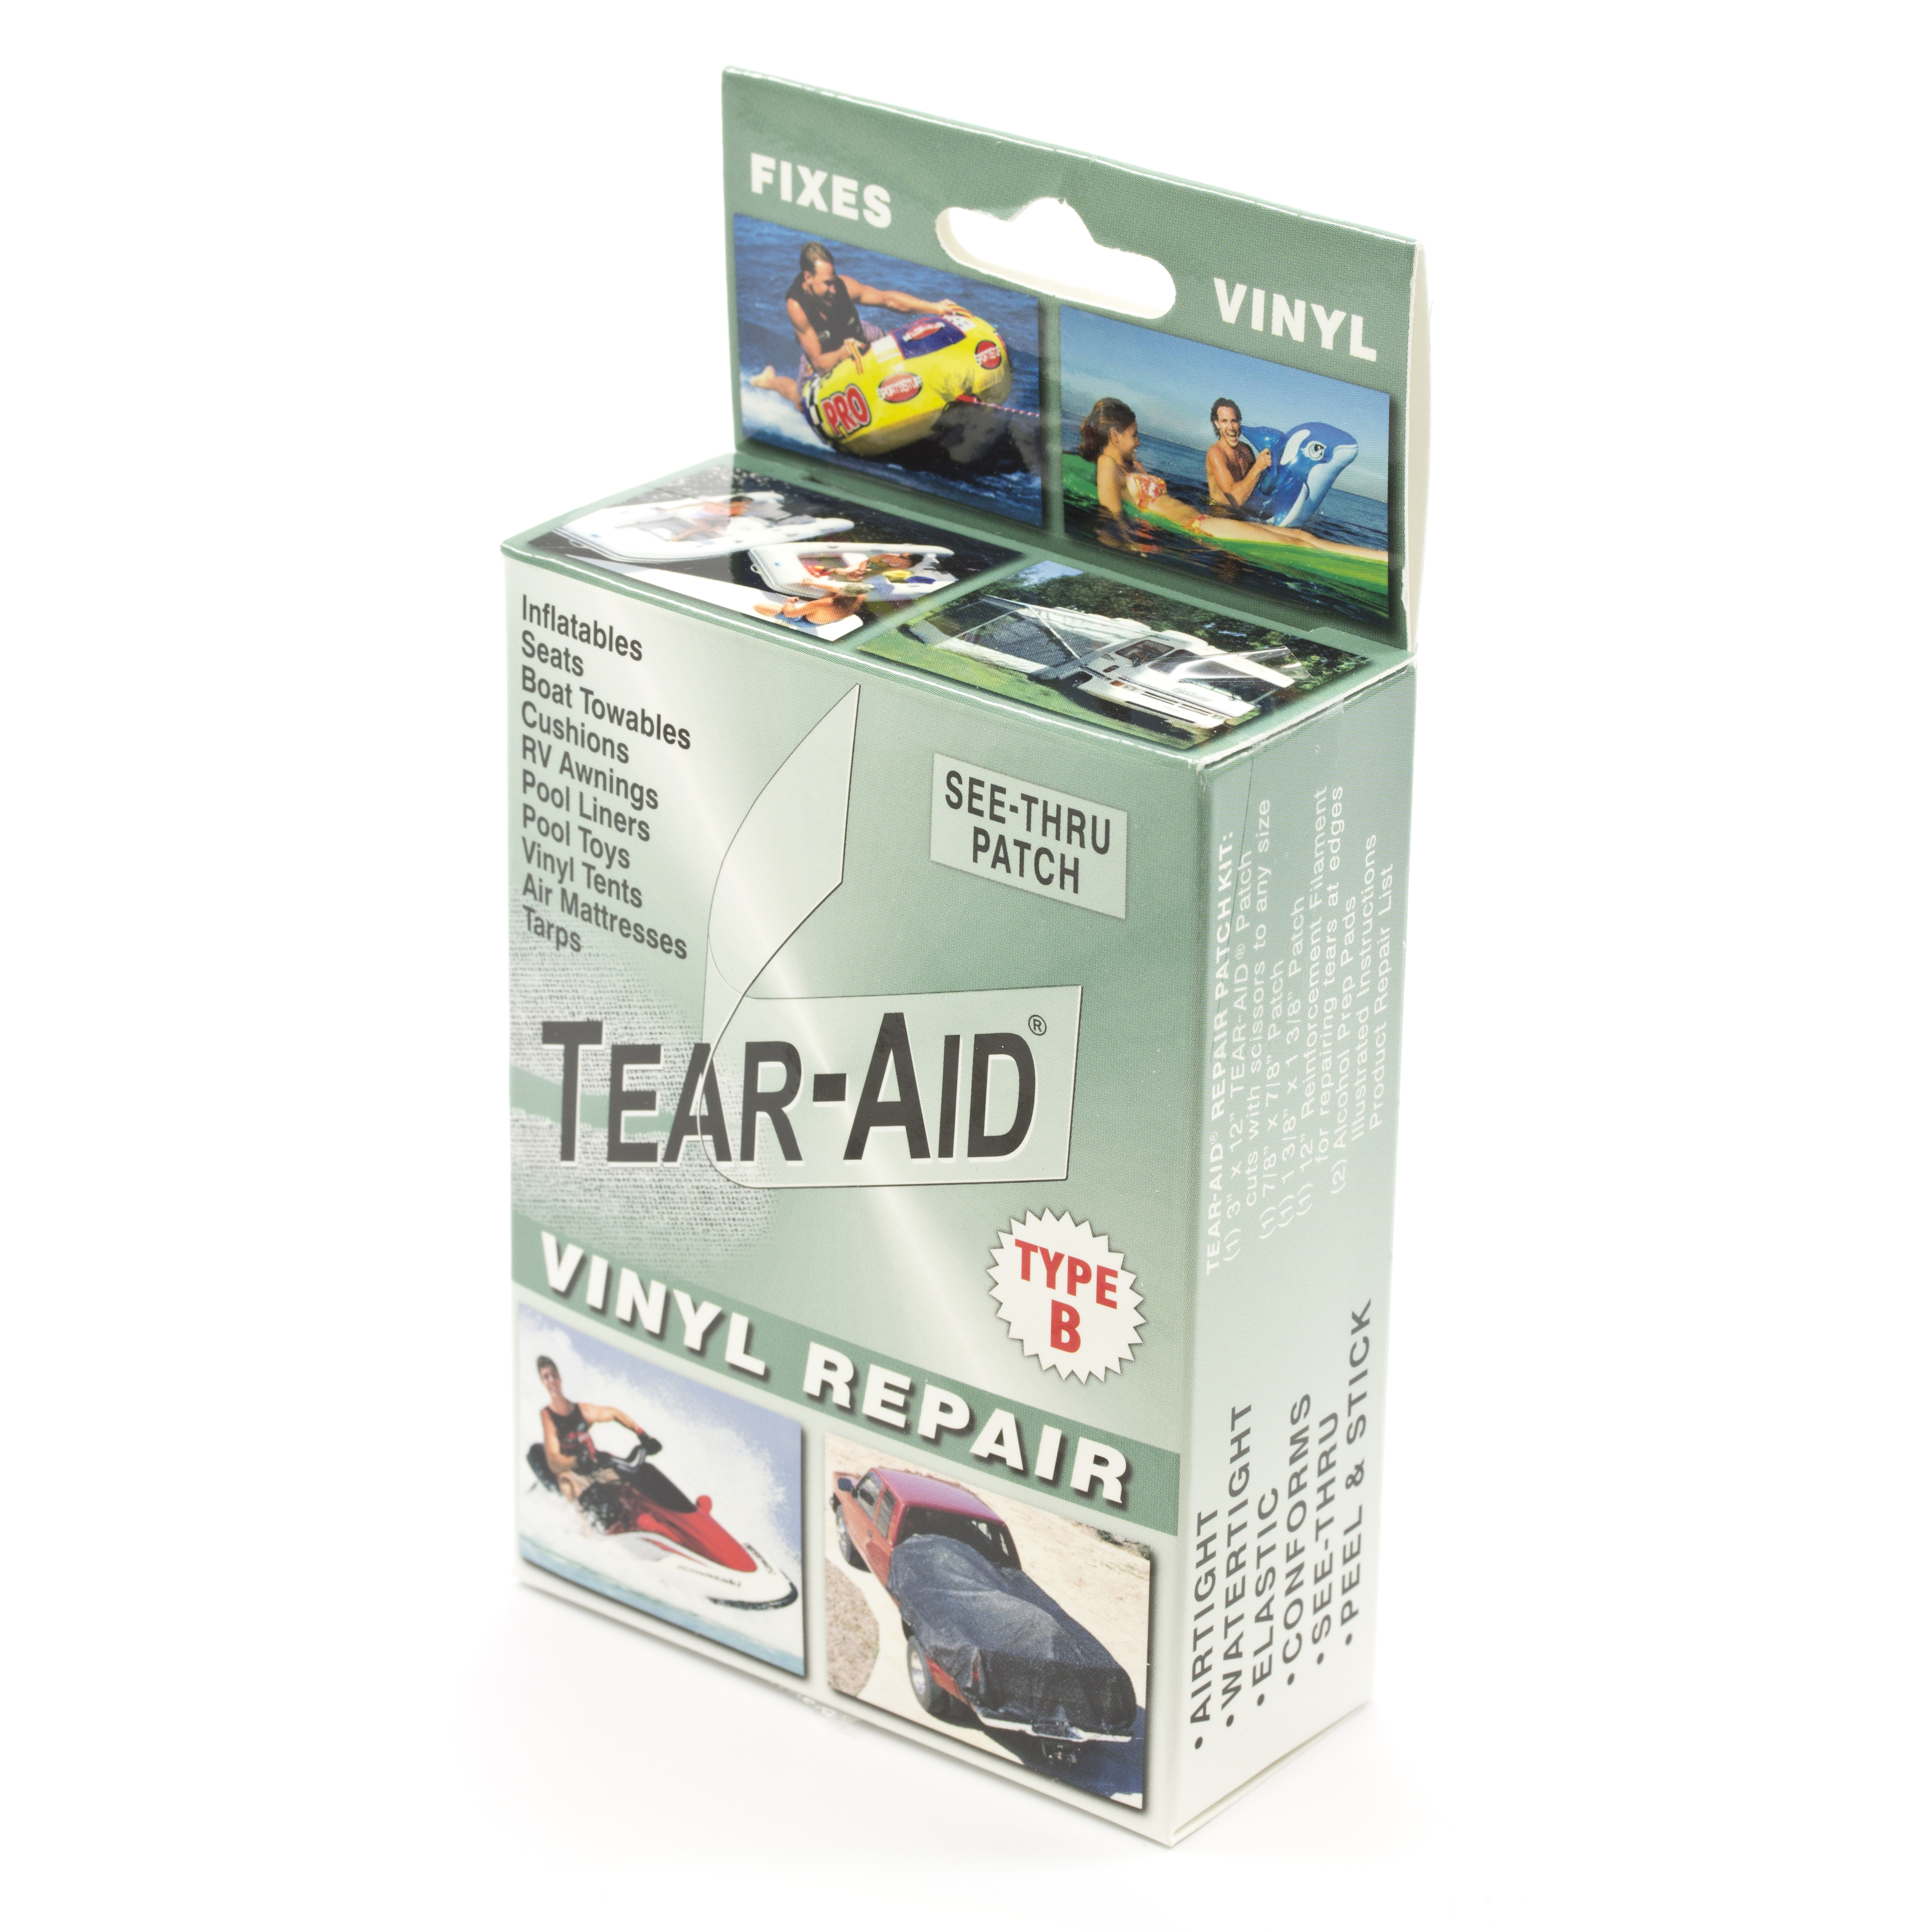 Tear Aid Retail Patch Kit Vinyl Type B 20 Pack With Display Trivantage